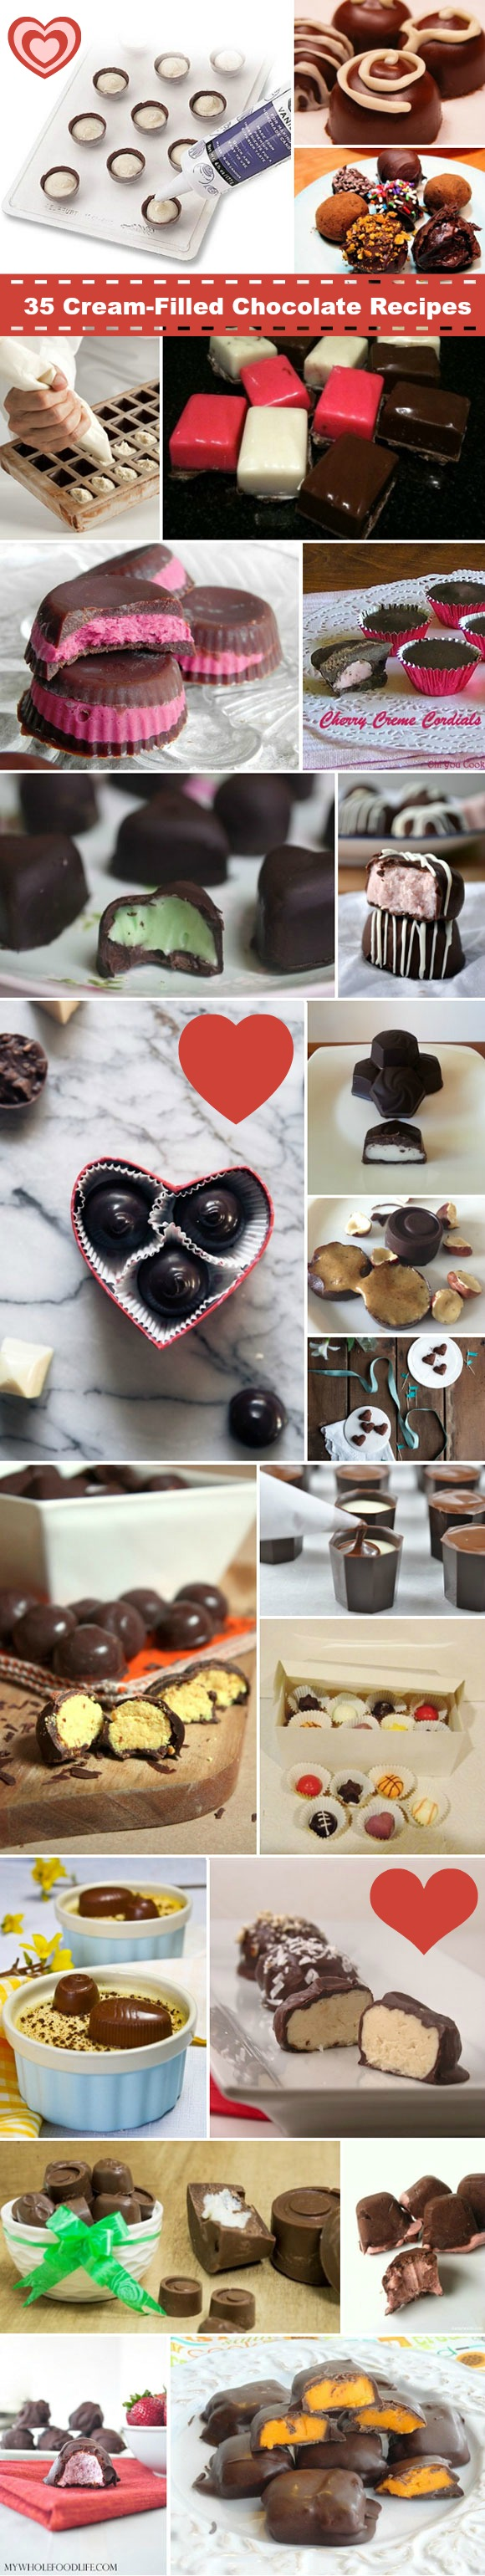 February 14th Is National Cream Filled Chocolates Day